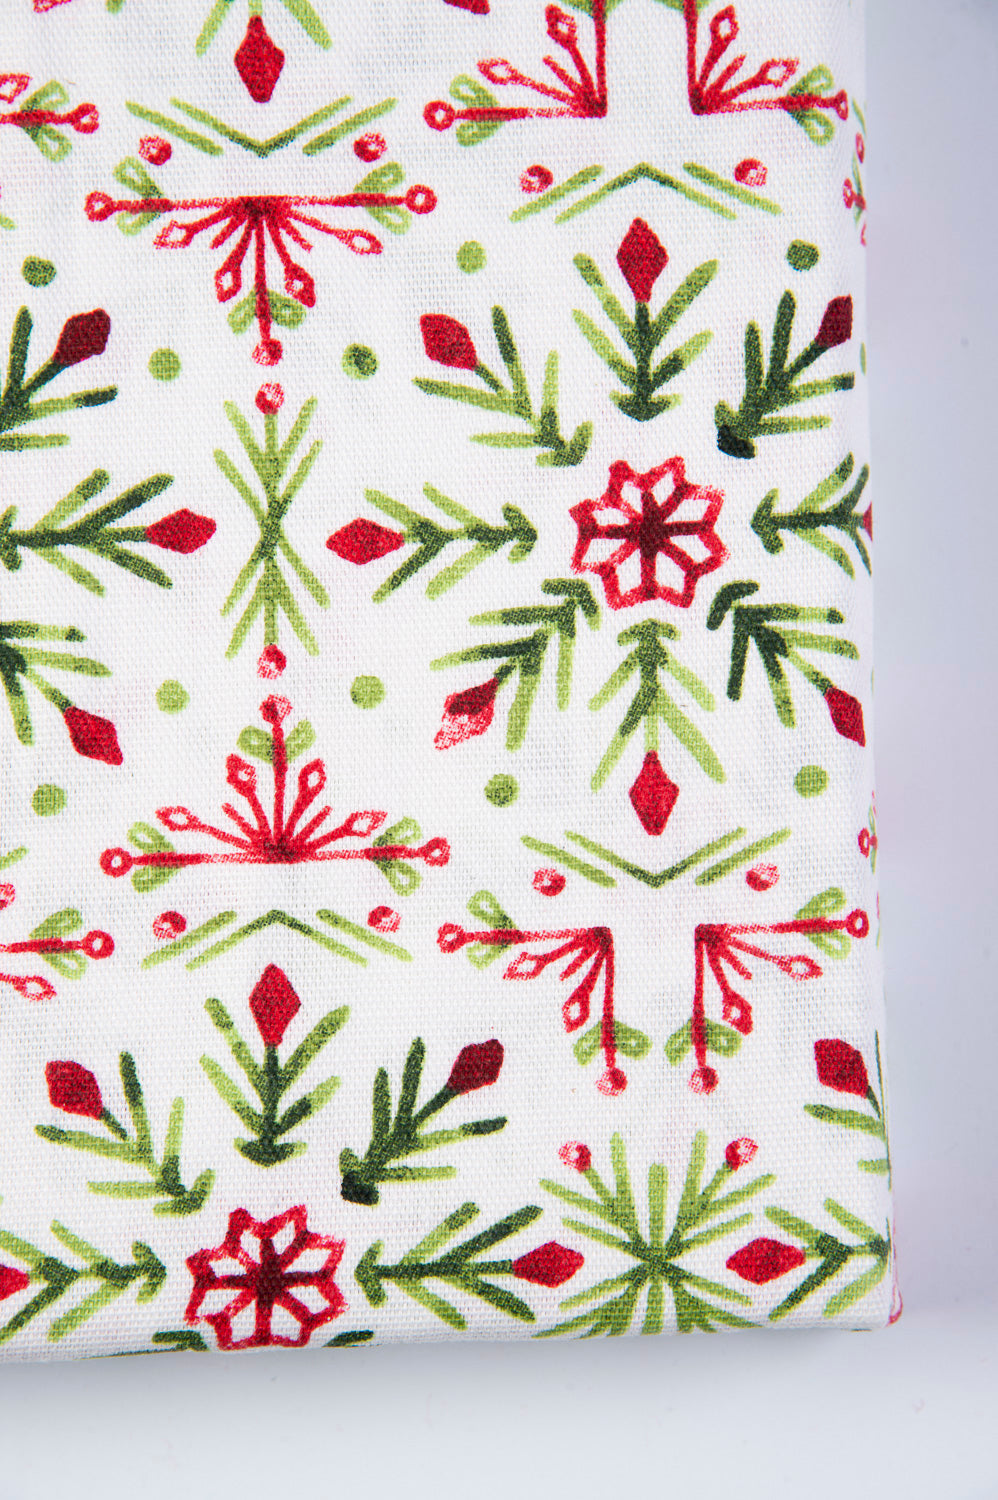 Fiesta Holiday tablecloth in festive pattern